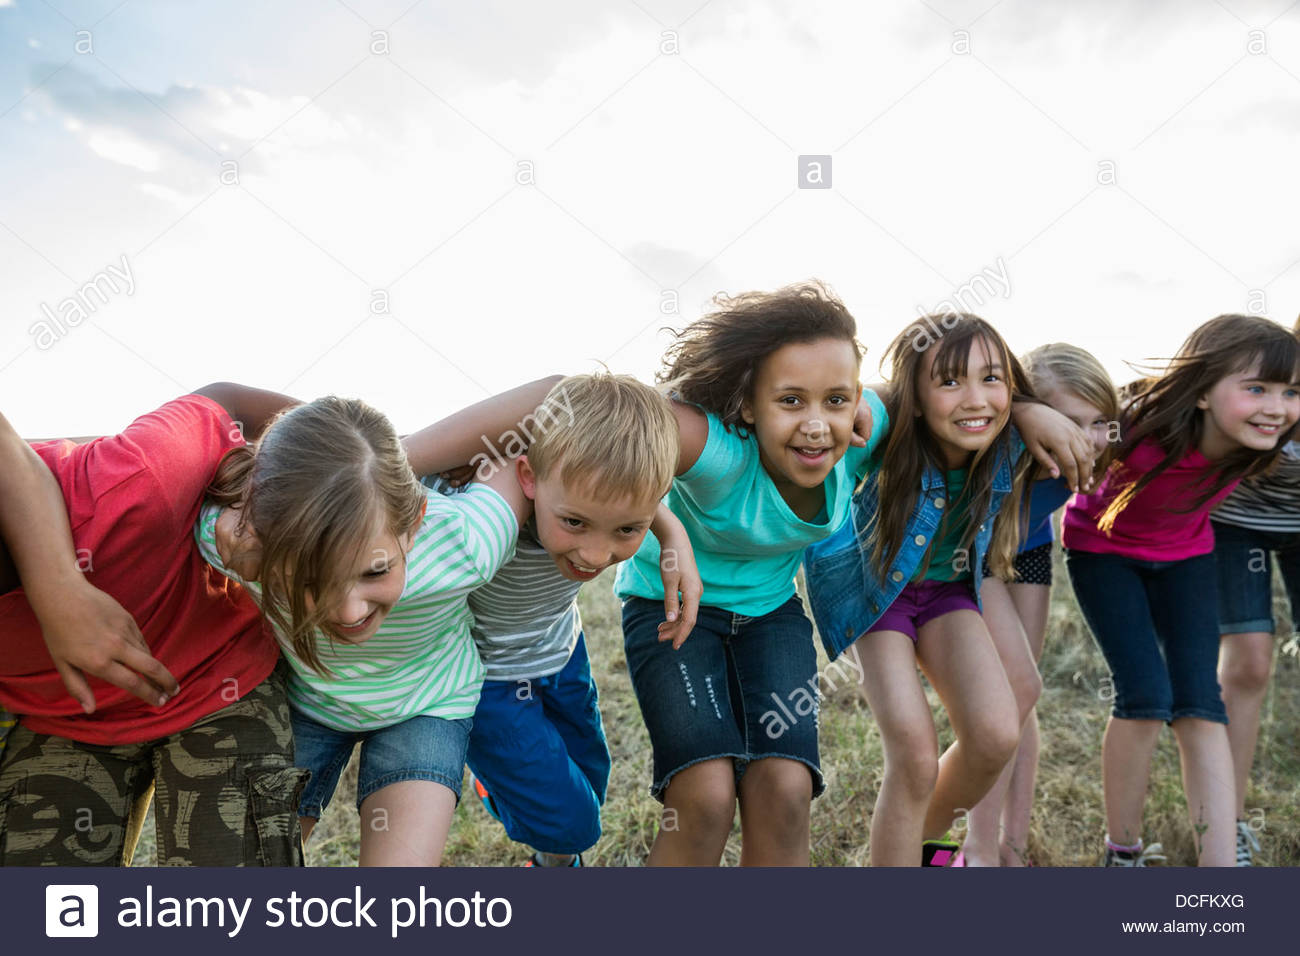 Group portrait of smiling kids standing in a row Photo Stock